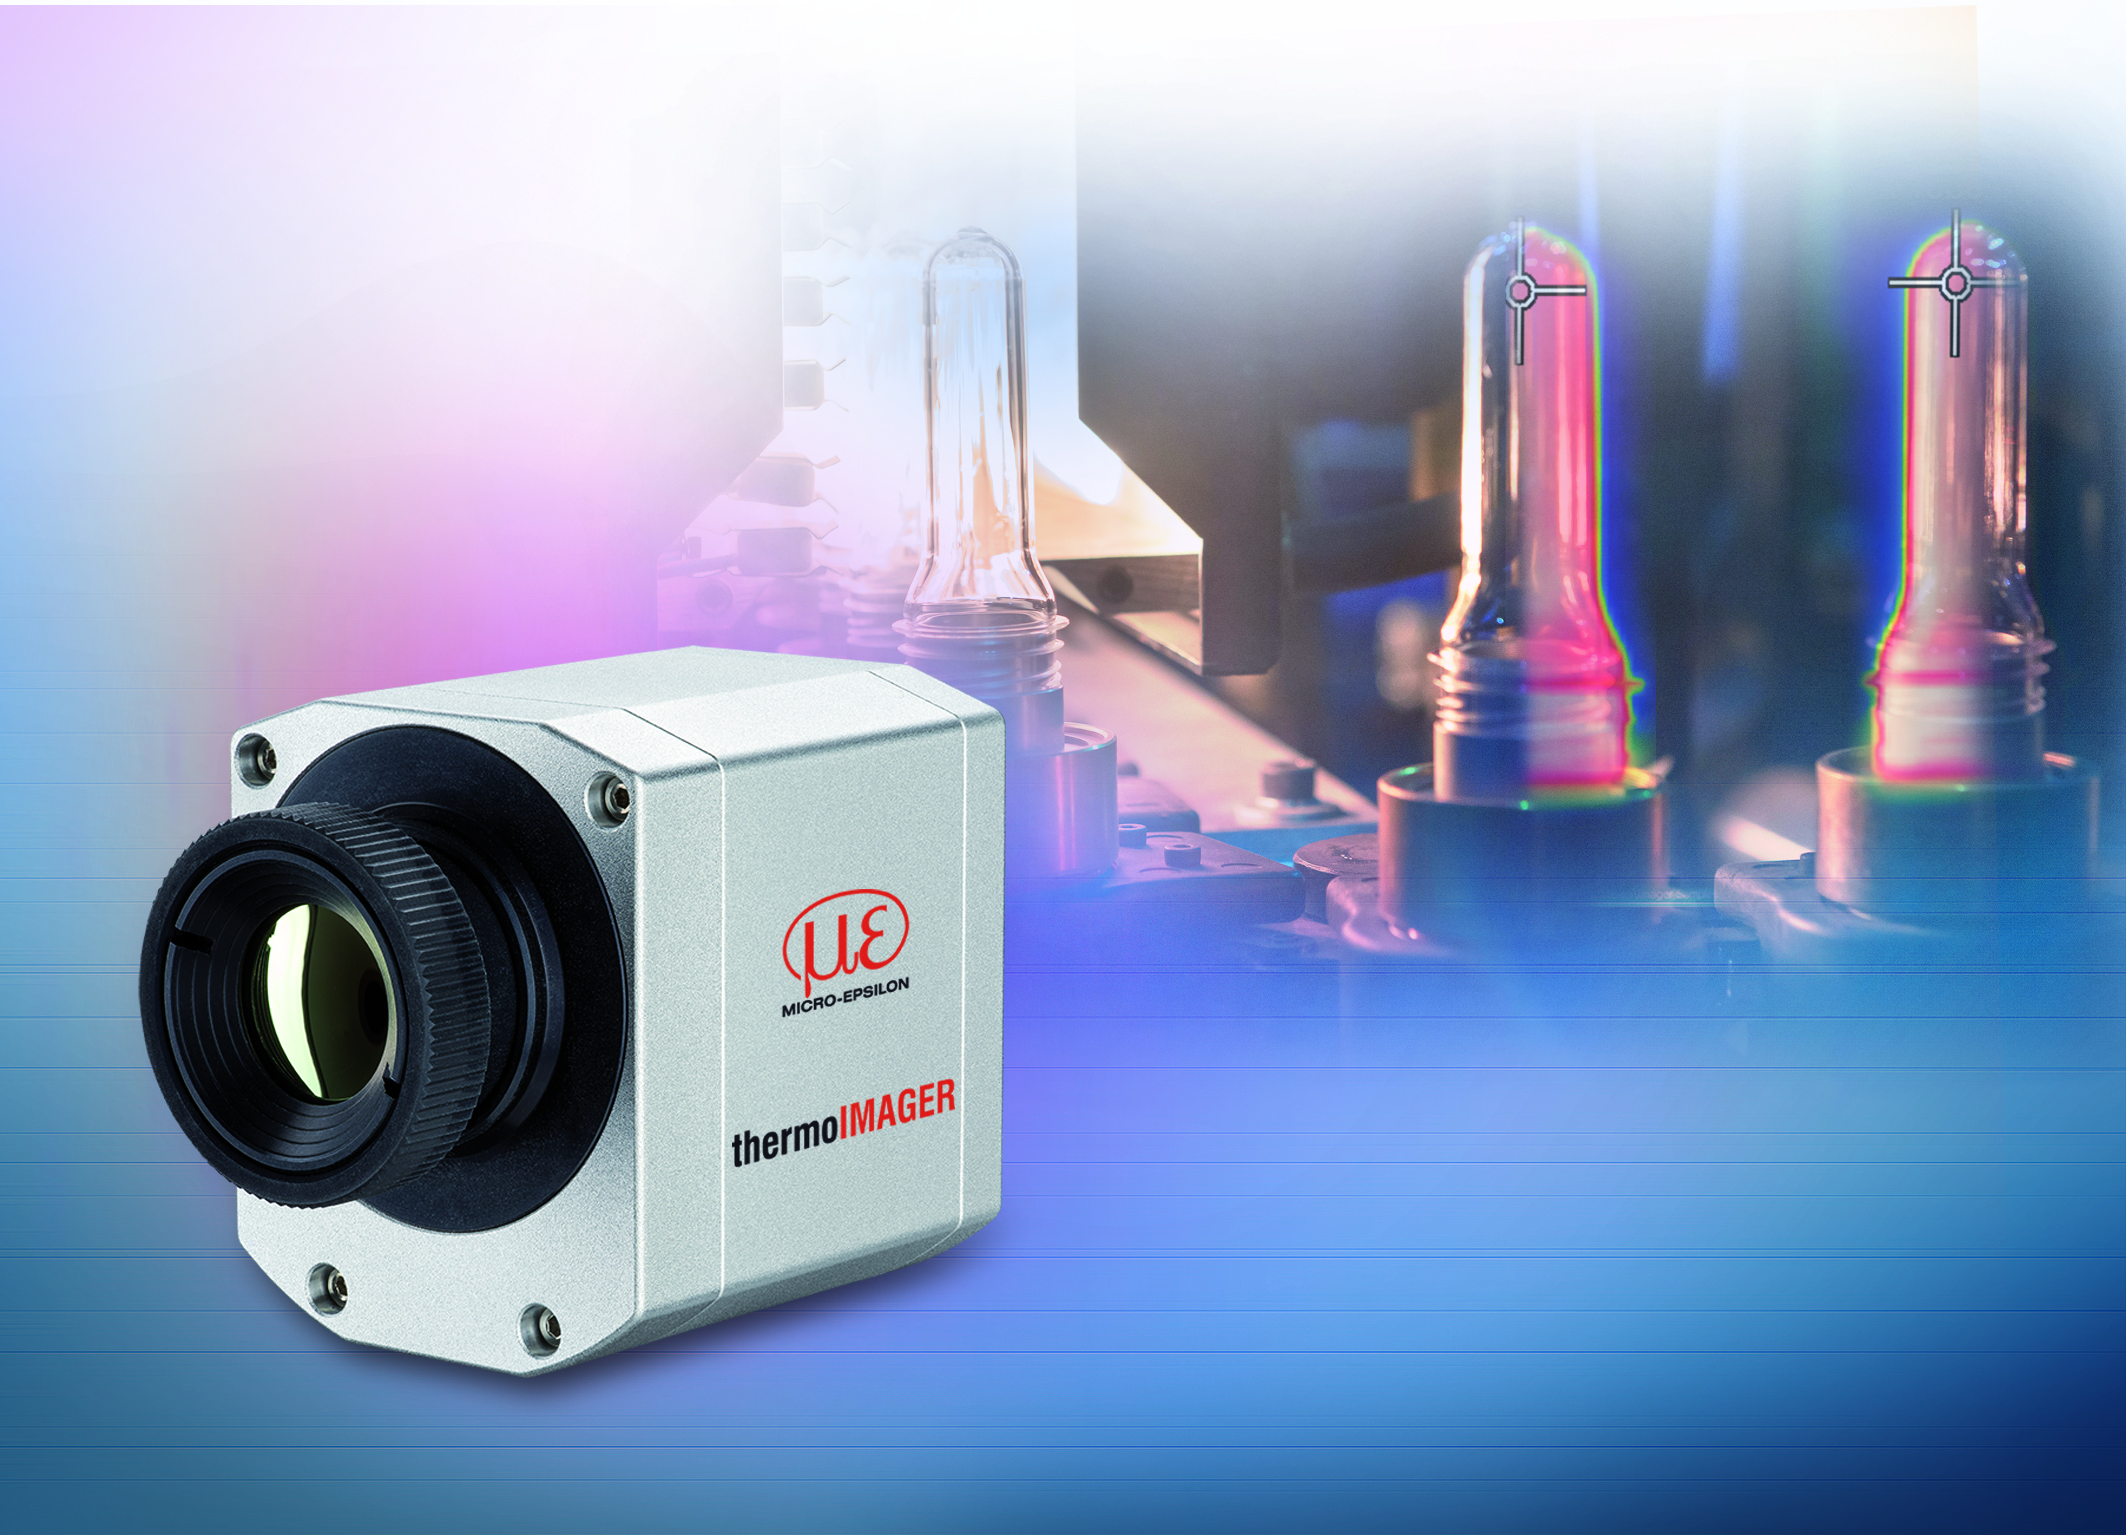 Thermal imaging camera for industrial temperature monitoring tasks